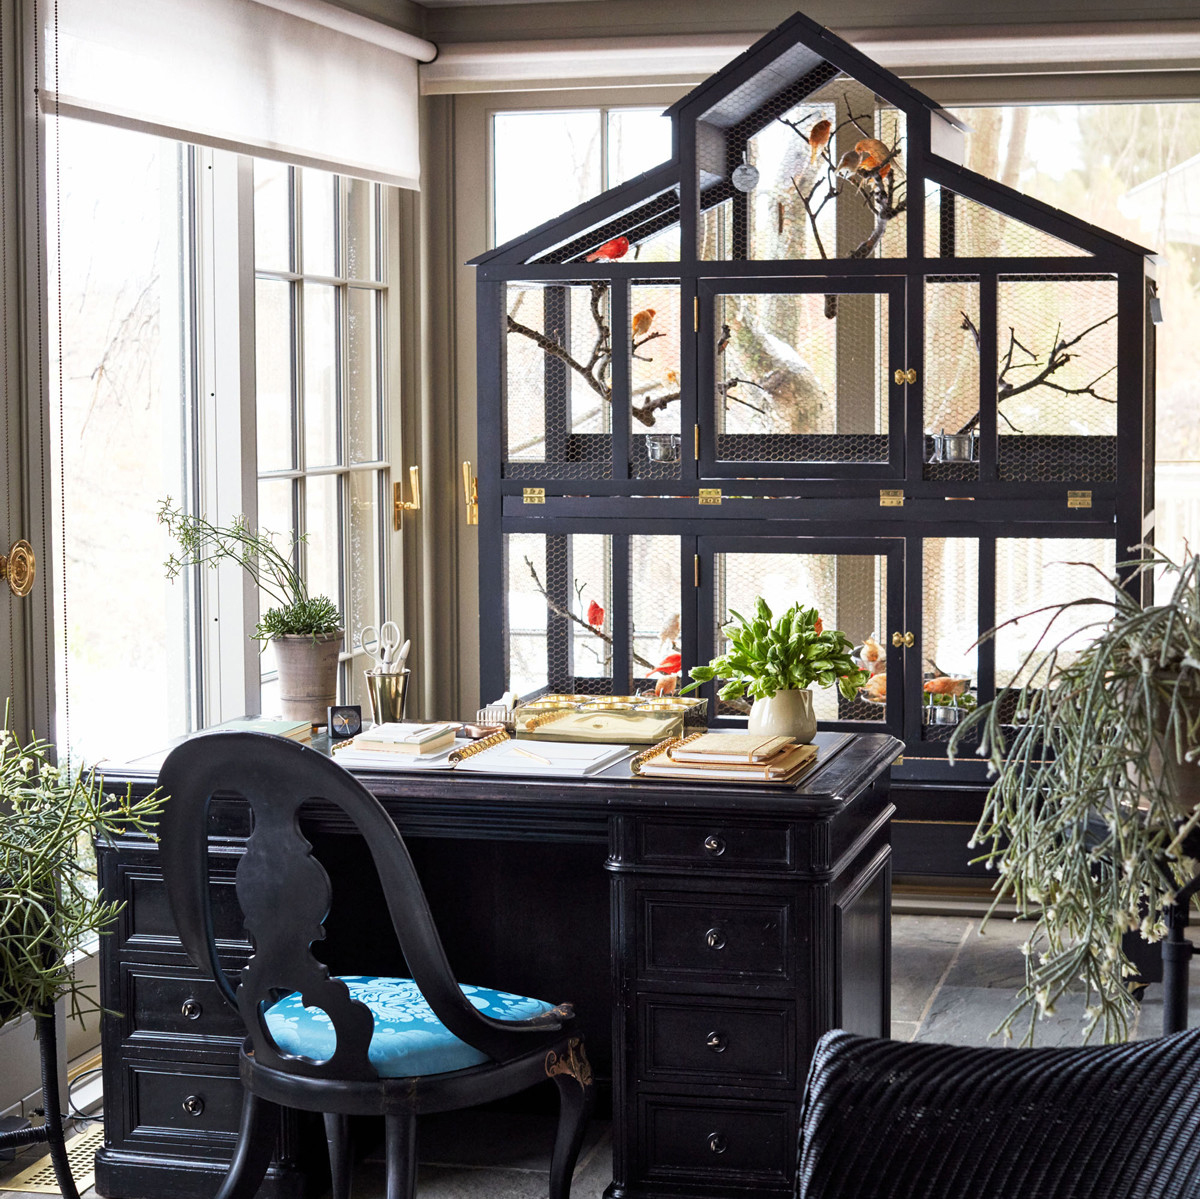 black canary cage in office